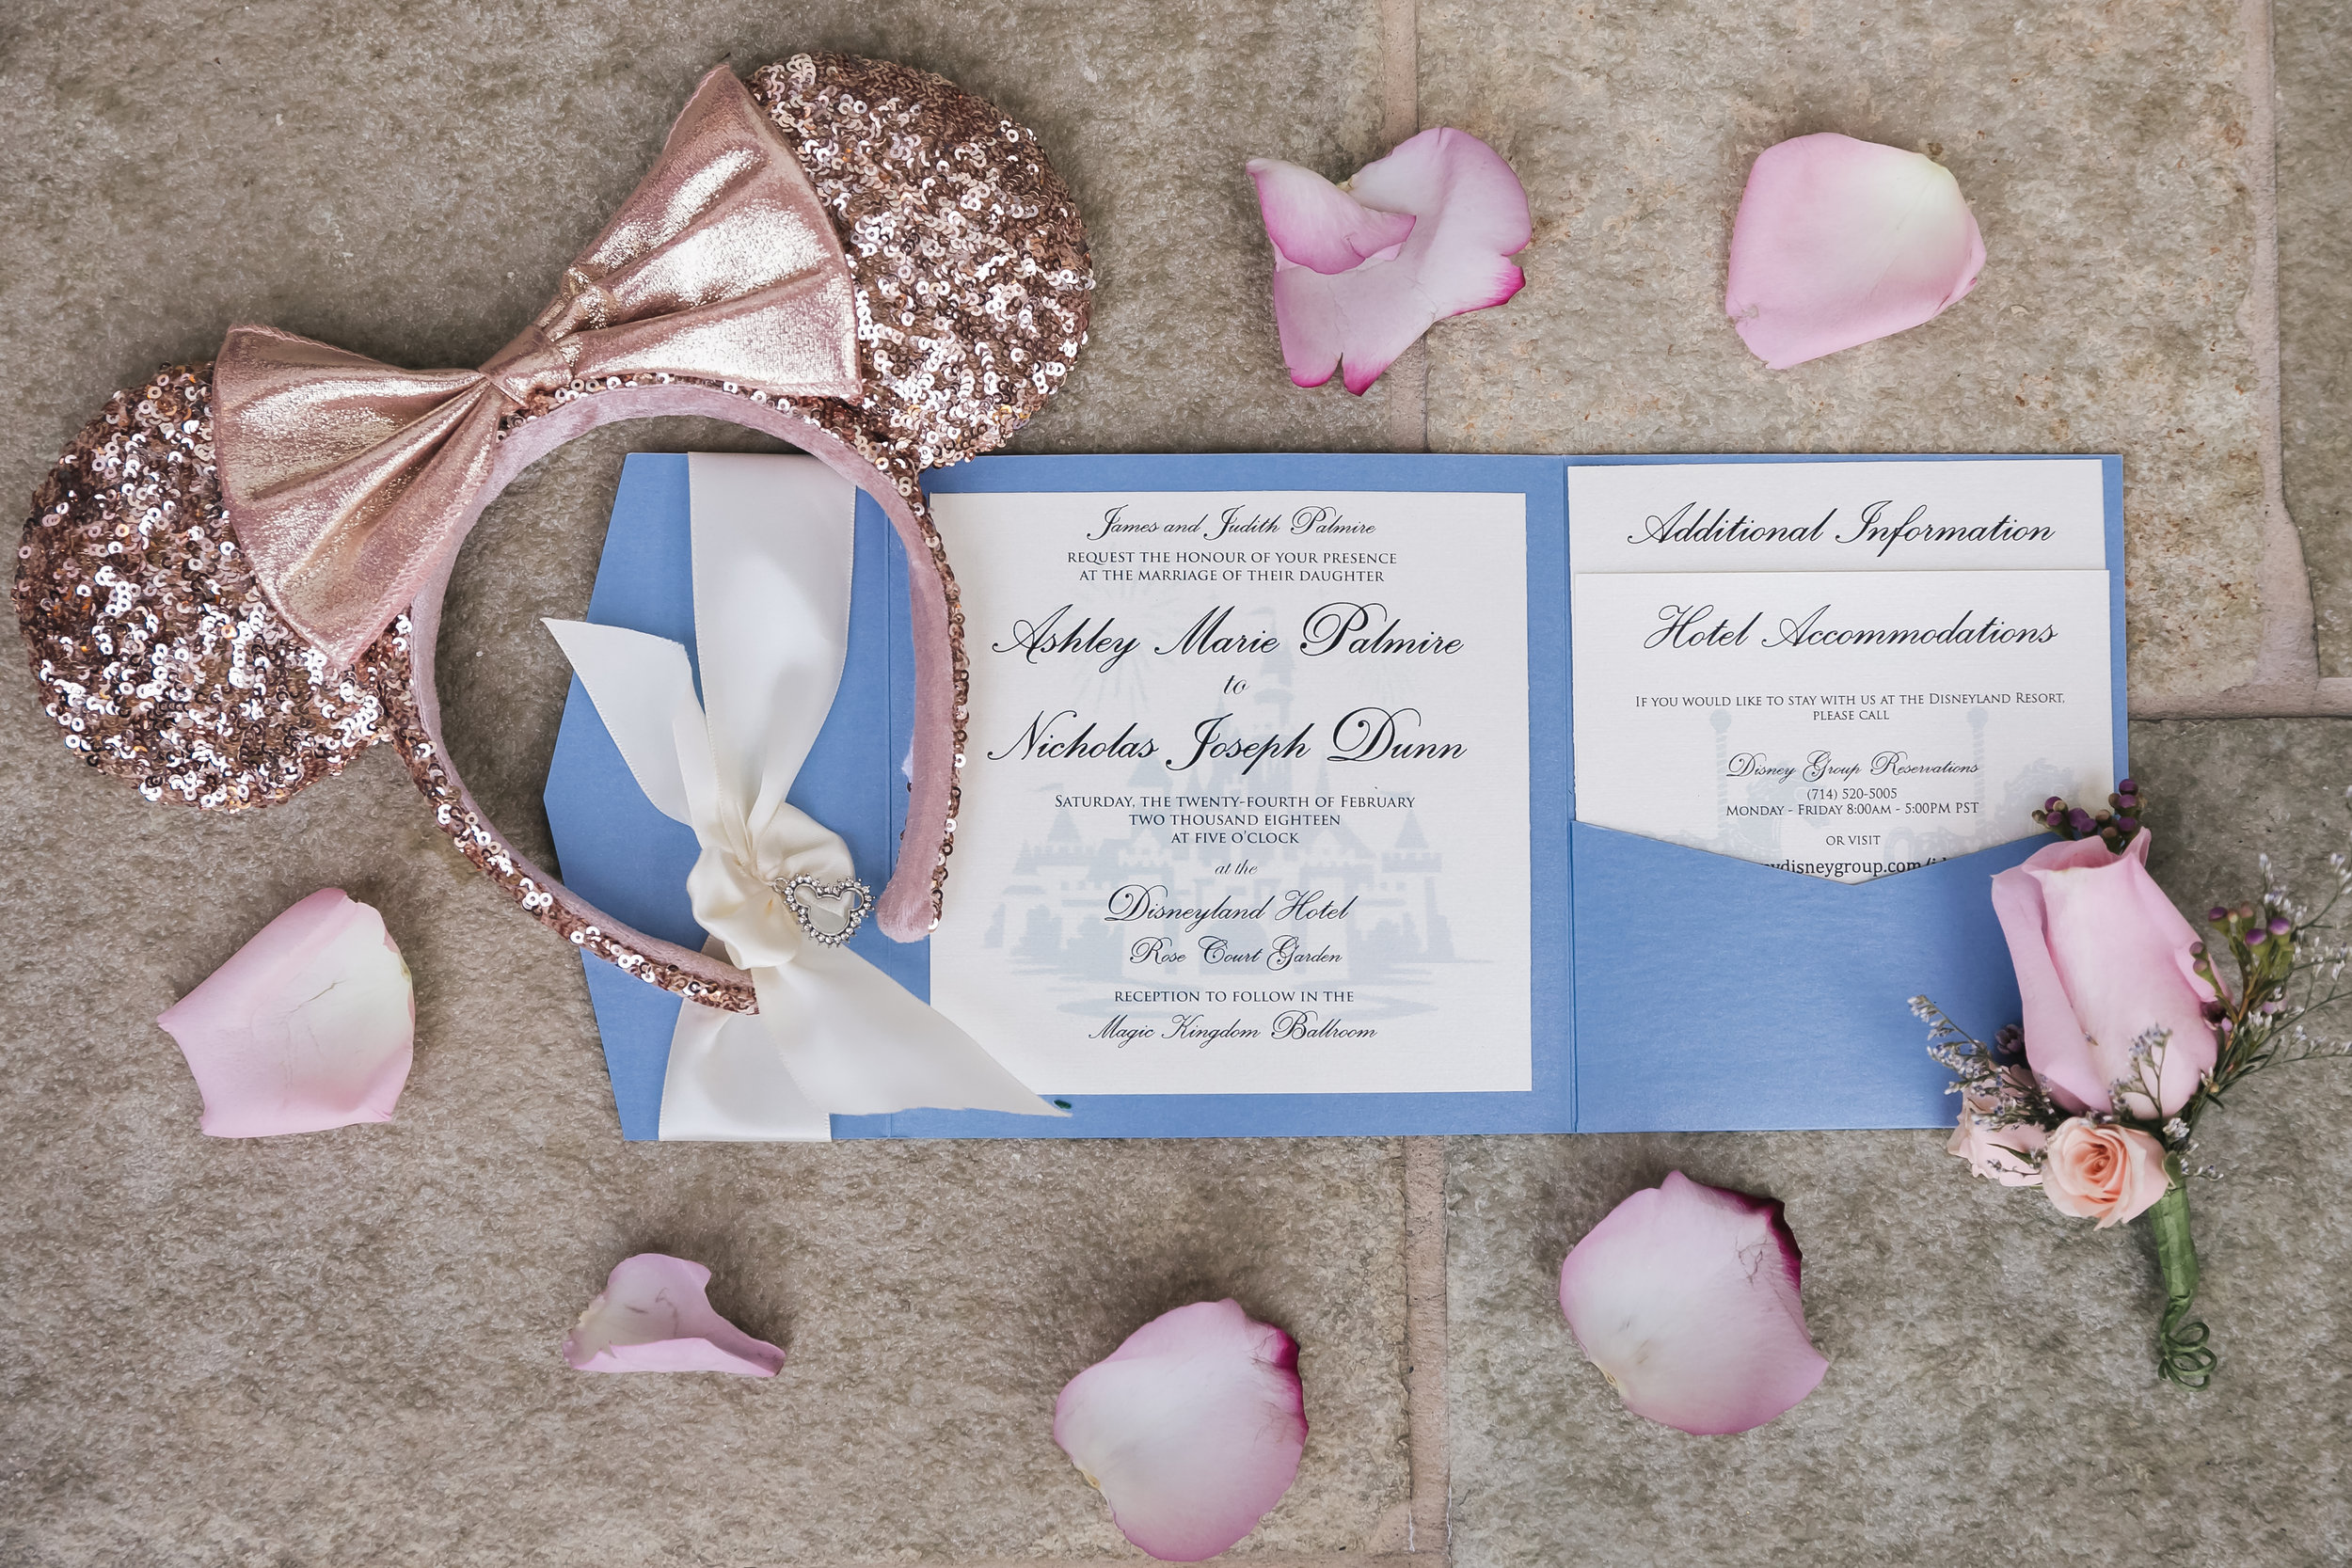 Rose gold Mickey ears, wedding invitation and Disney wedding decor photo by Analisa Joy Photography. Wedding Beauty by Vanity Belle. www.thevanitybelle.com